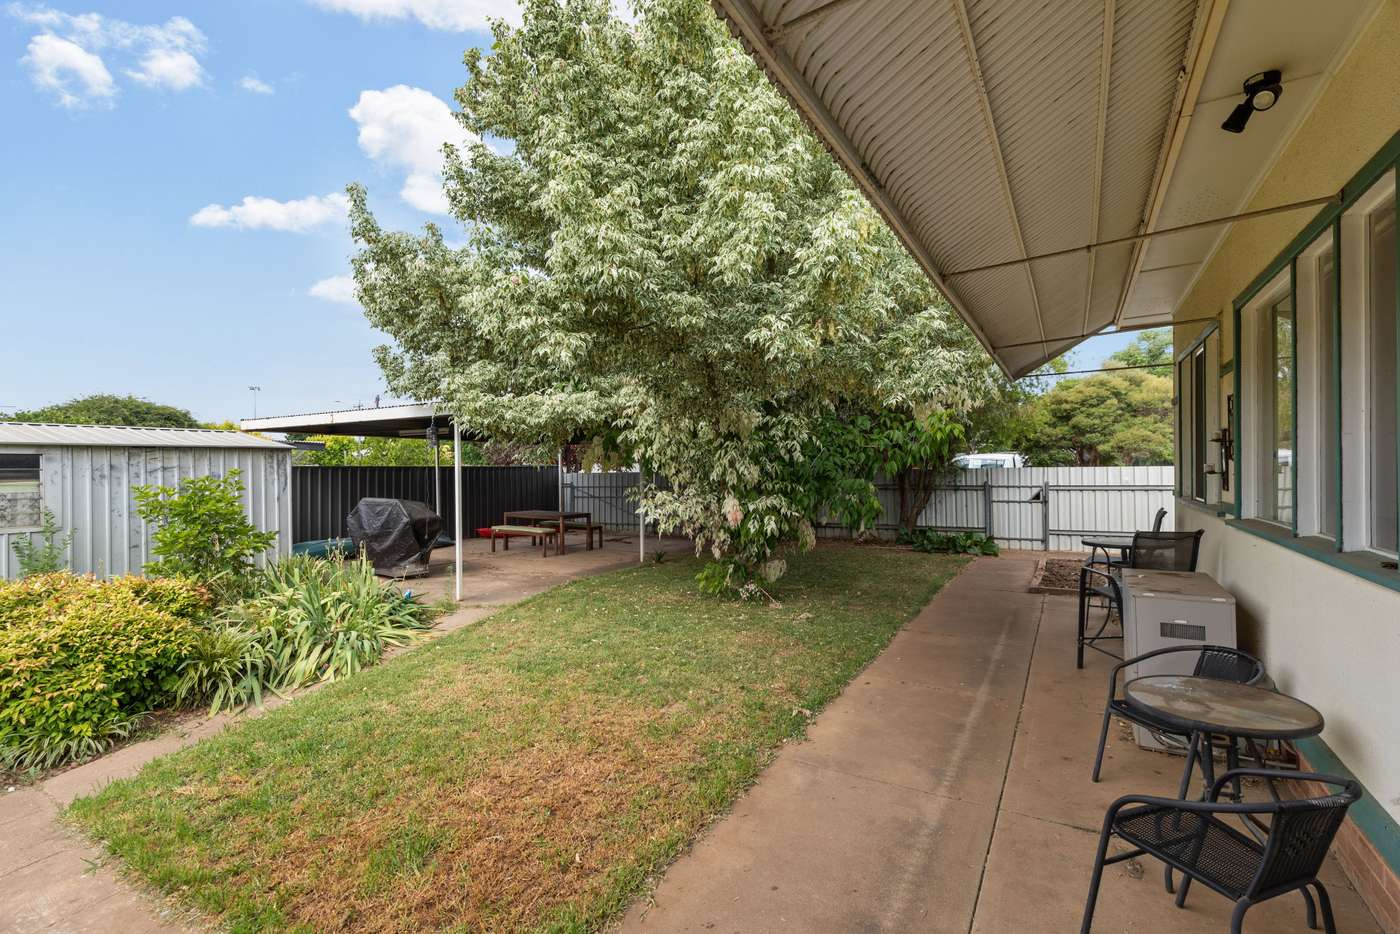 Seventh view of Homely house listing, 47 Gormly Avenue, Wagga Wagga NSW 2650